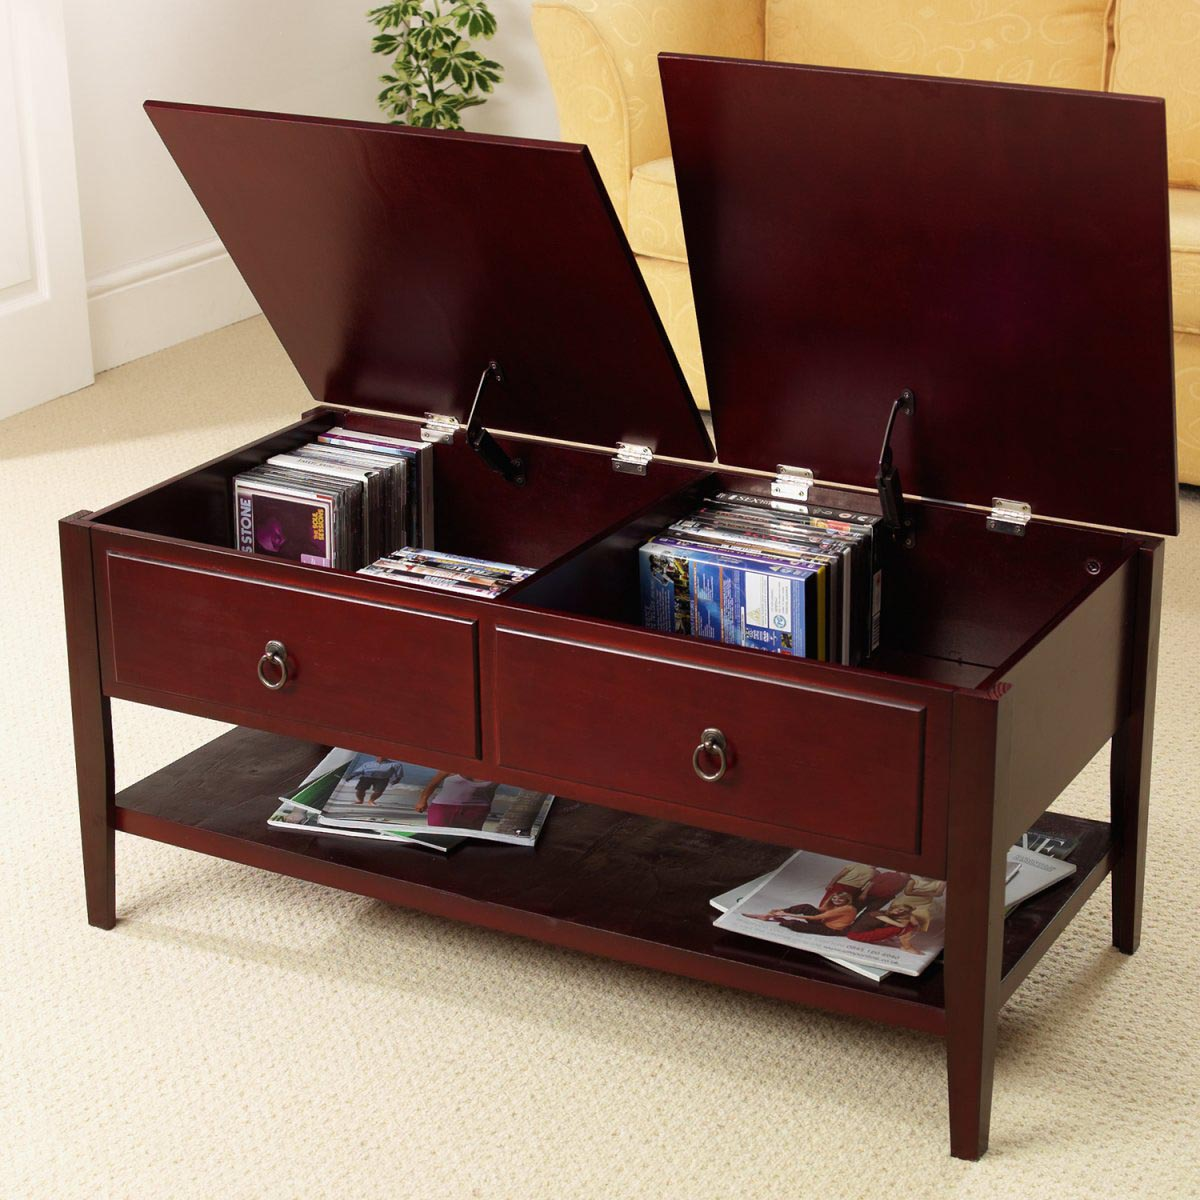 Coffee And End Tables With Storage Mahogany Coffee Tables With Storage Coffee Table Design